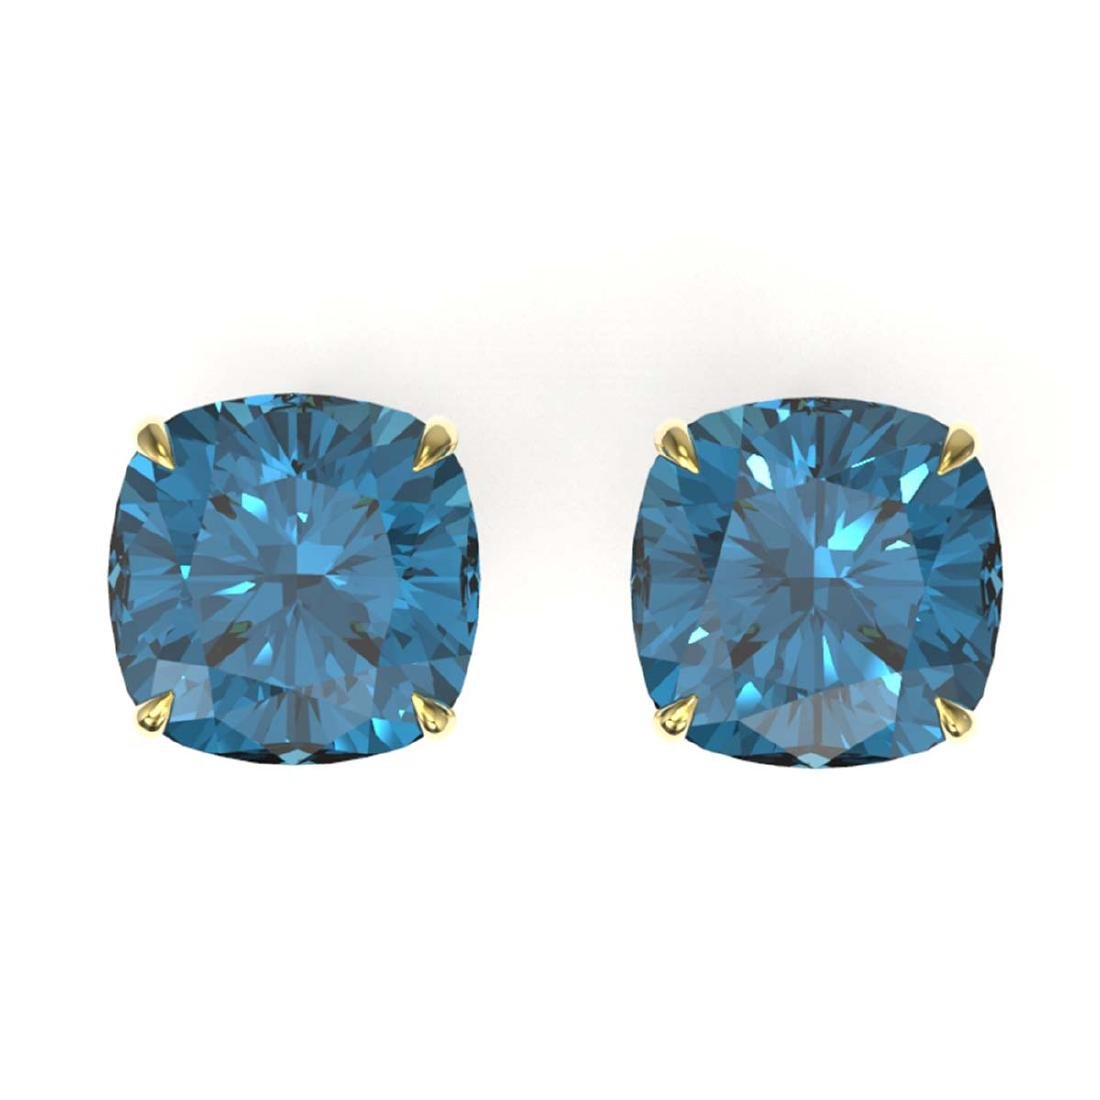 12 ctw Cushion London Blue Topaz Stud Earrings 18K